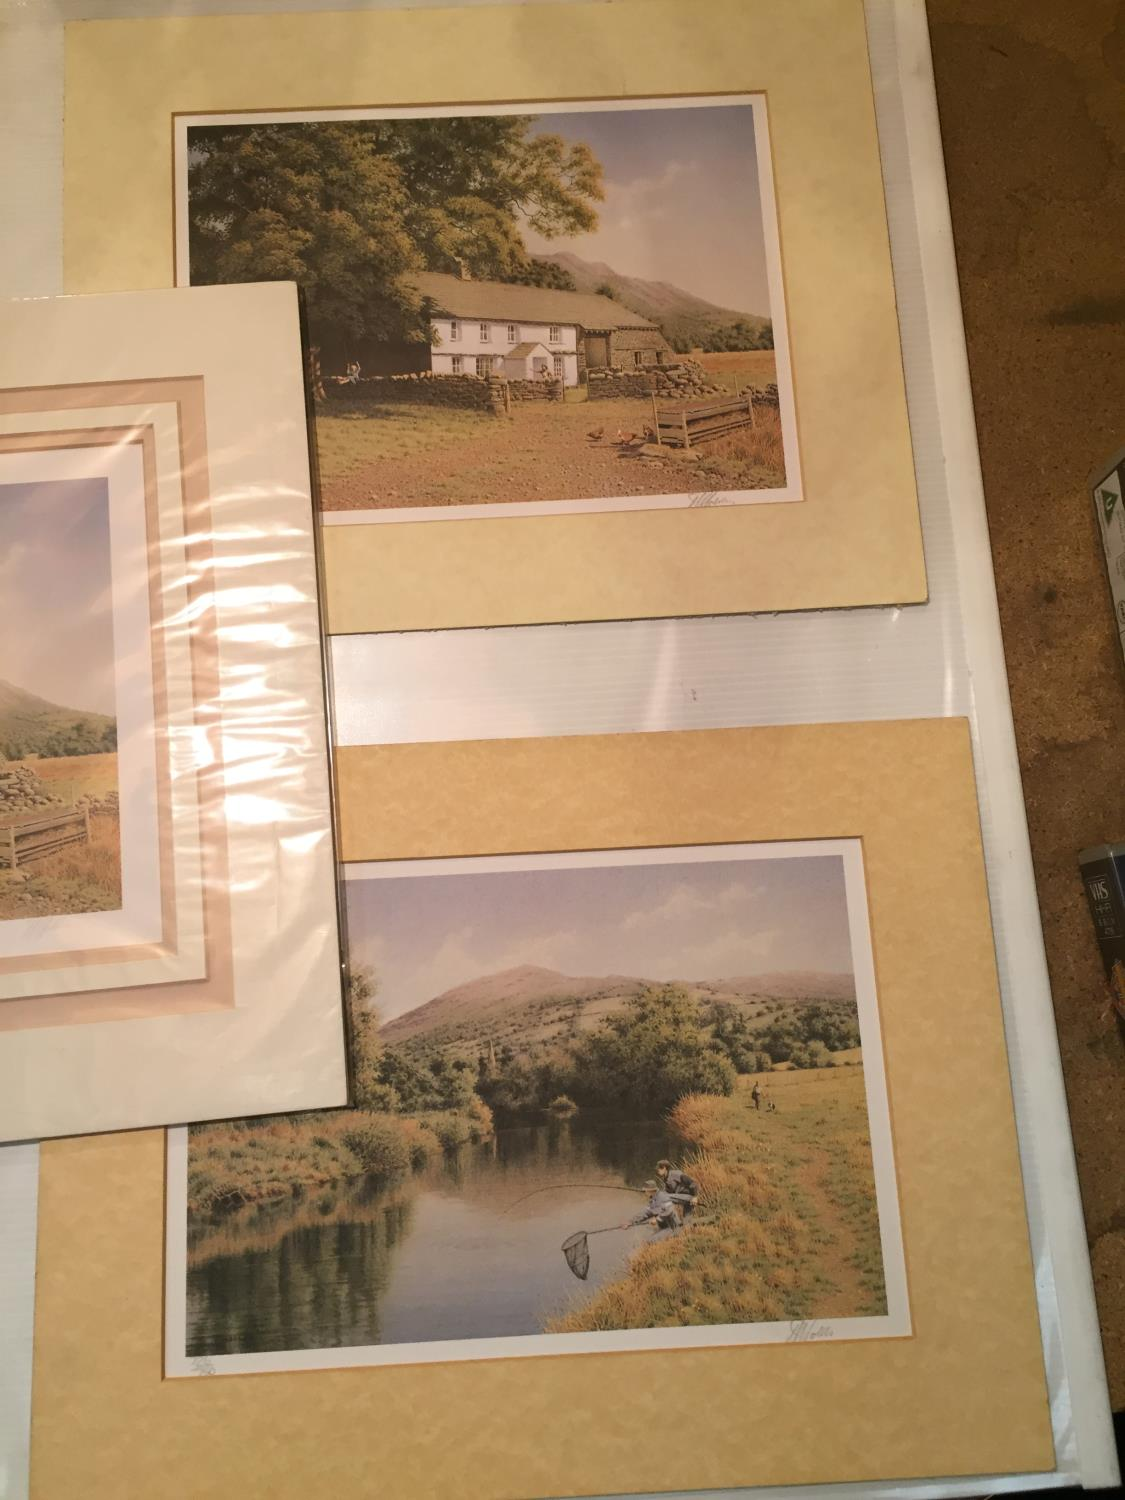 THREE MOUNTED SIGNED PRINTS OF FARM SCENES IN A HARDBACK PROTECTIVE FOLDER - Image 3 of 12